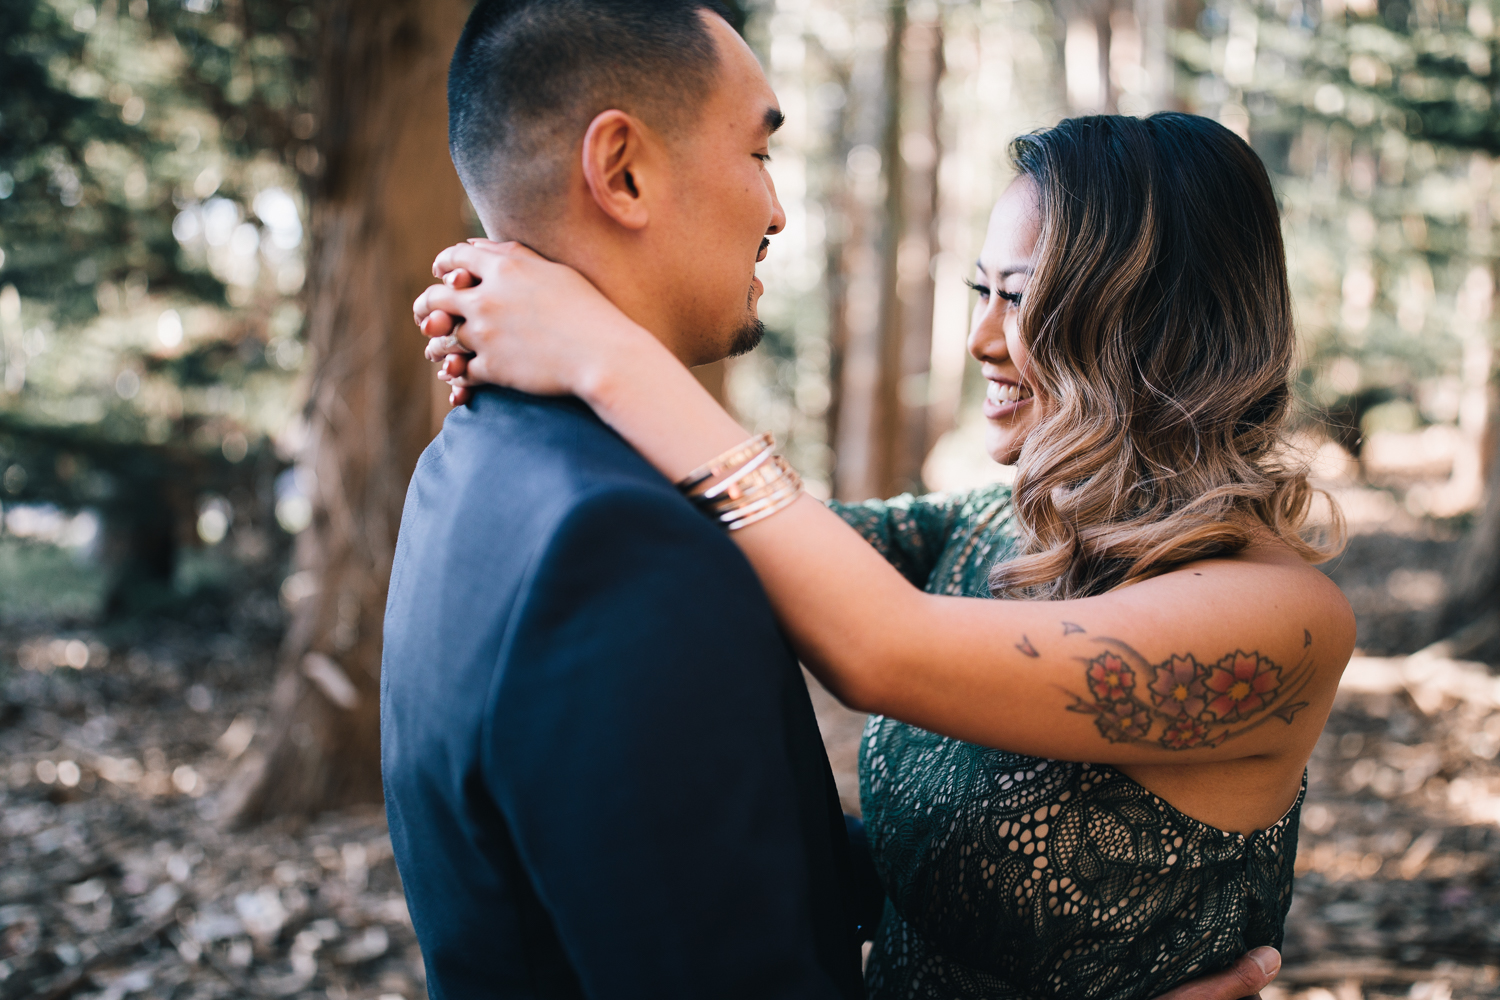 2018_11_ 042018.11.4 Leah + Ed Engagement Session Blog photos Edited For Web 0020.jpg